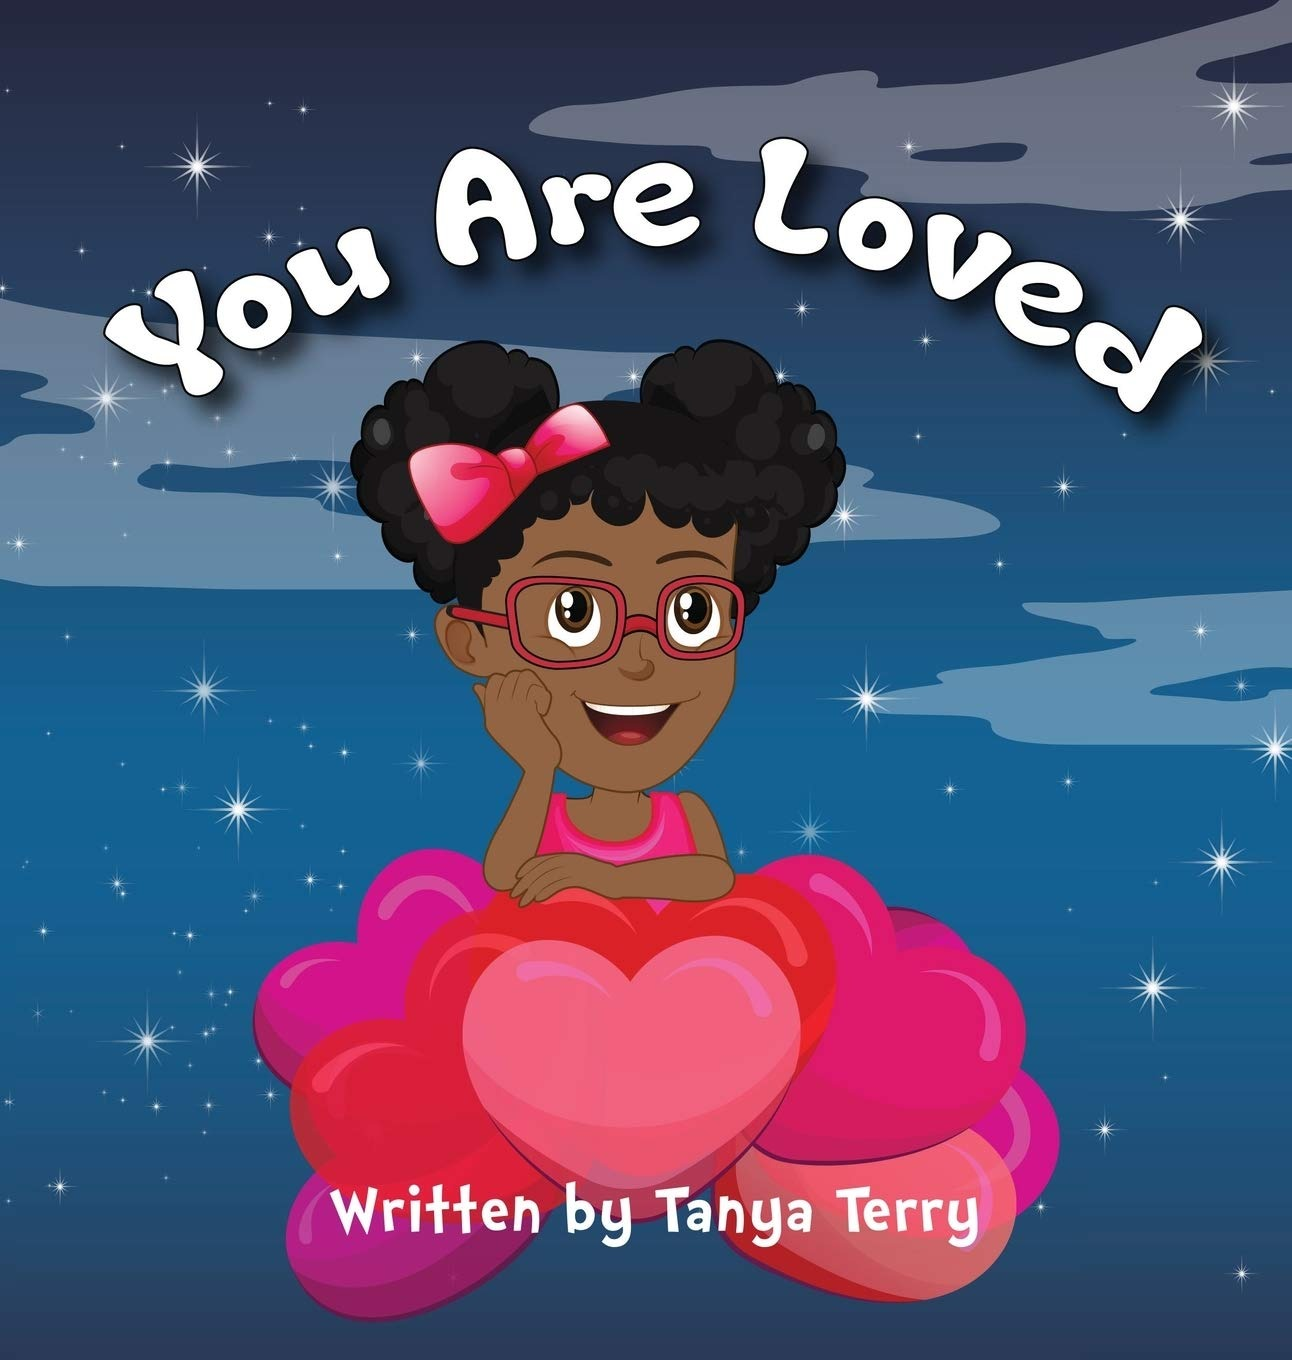 You-are-loved-by-tanya-terry-hardcover-child-book